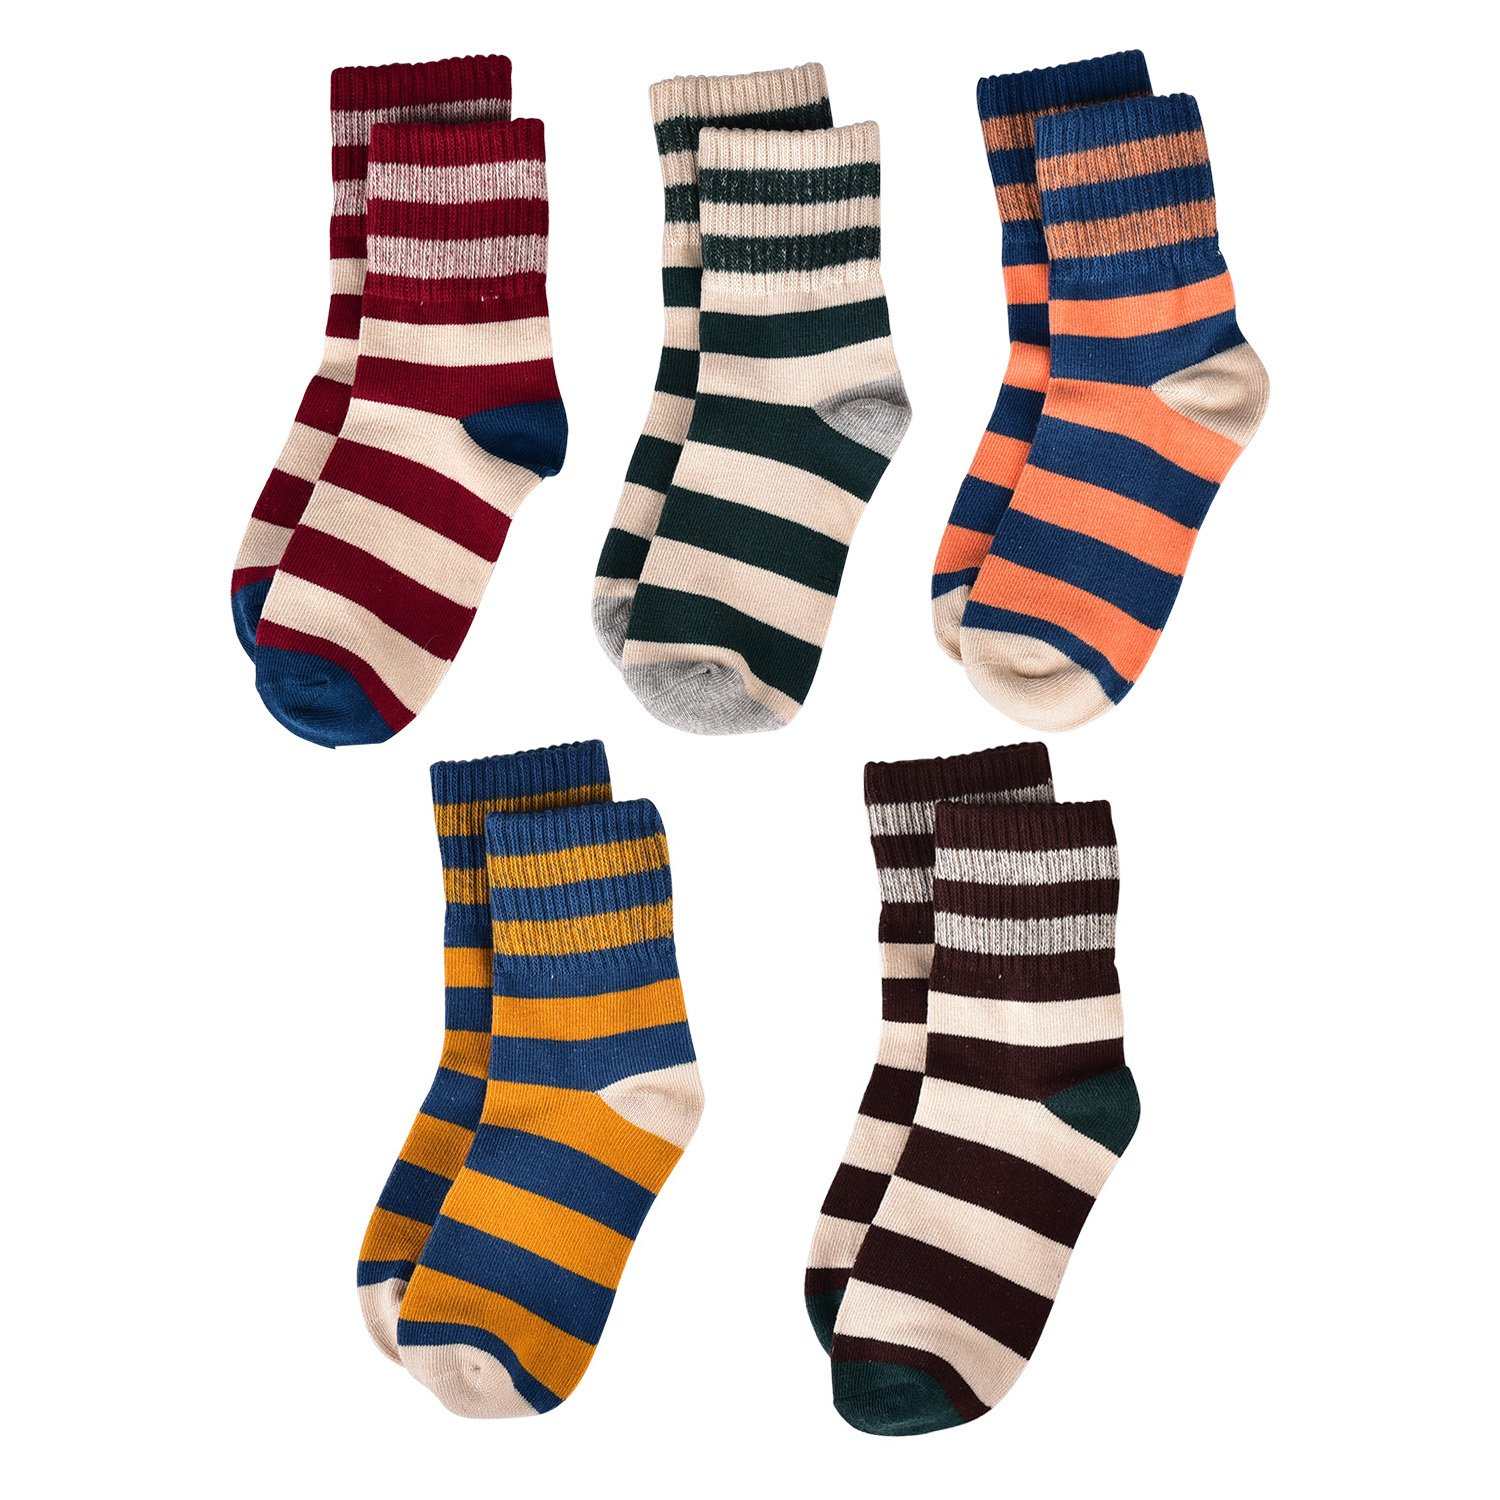 Flanhiri Kids Boys Striped Cotton Crew Socks 5 Pack